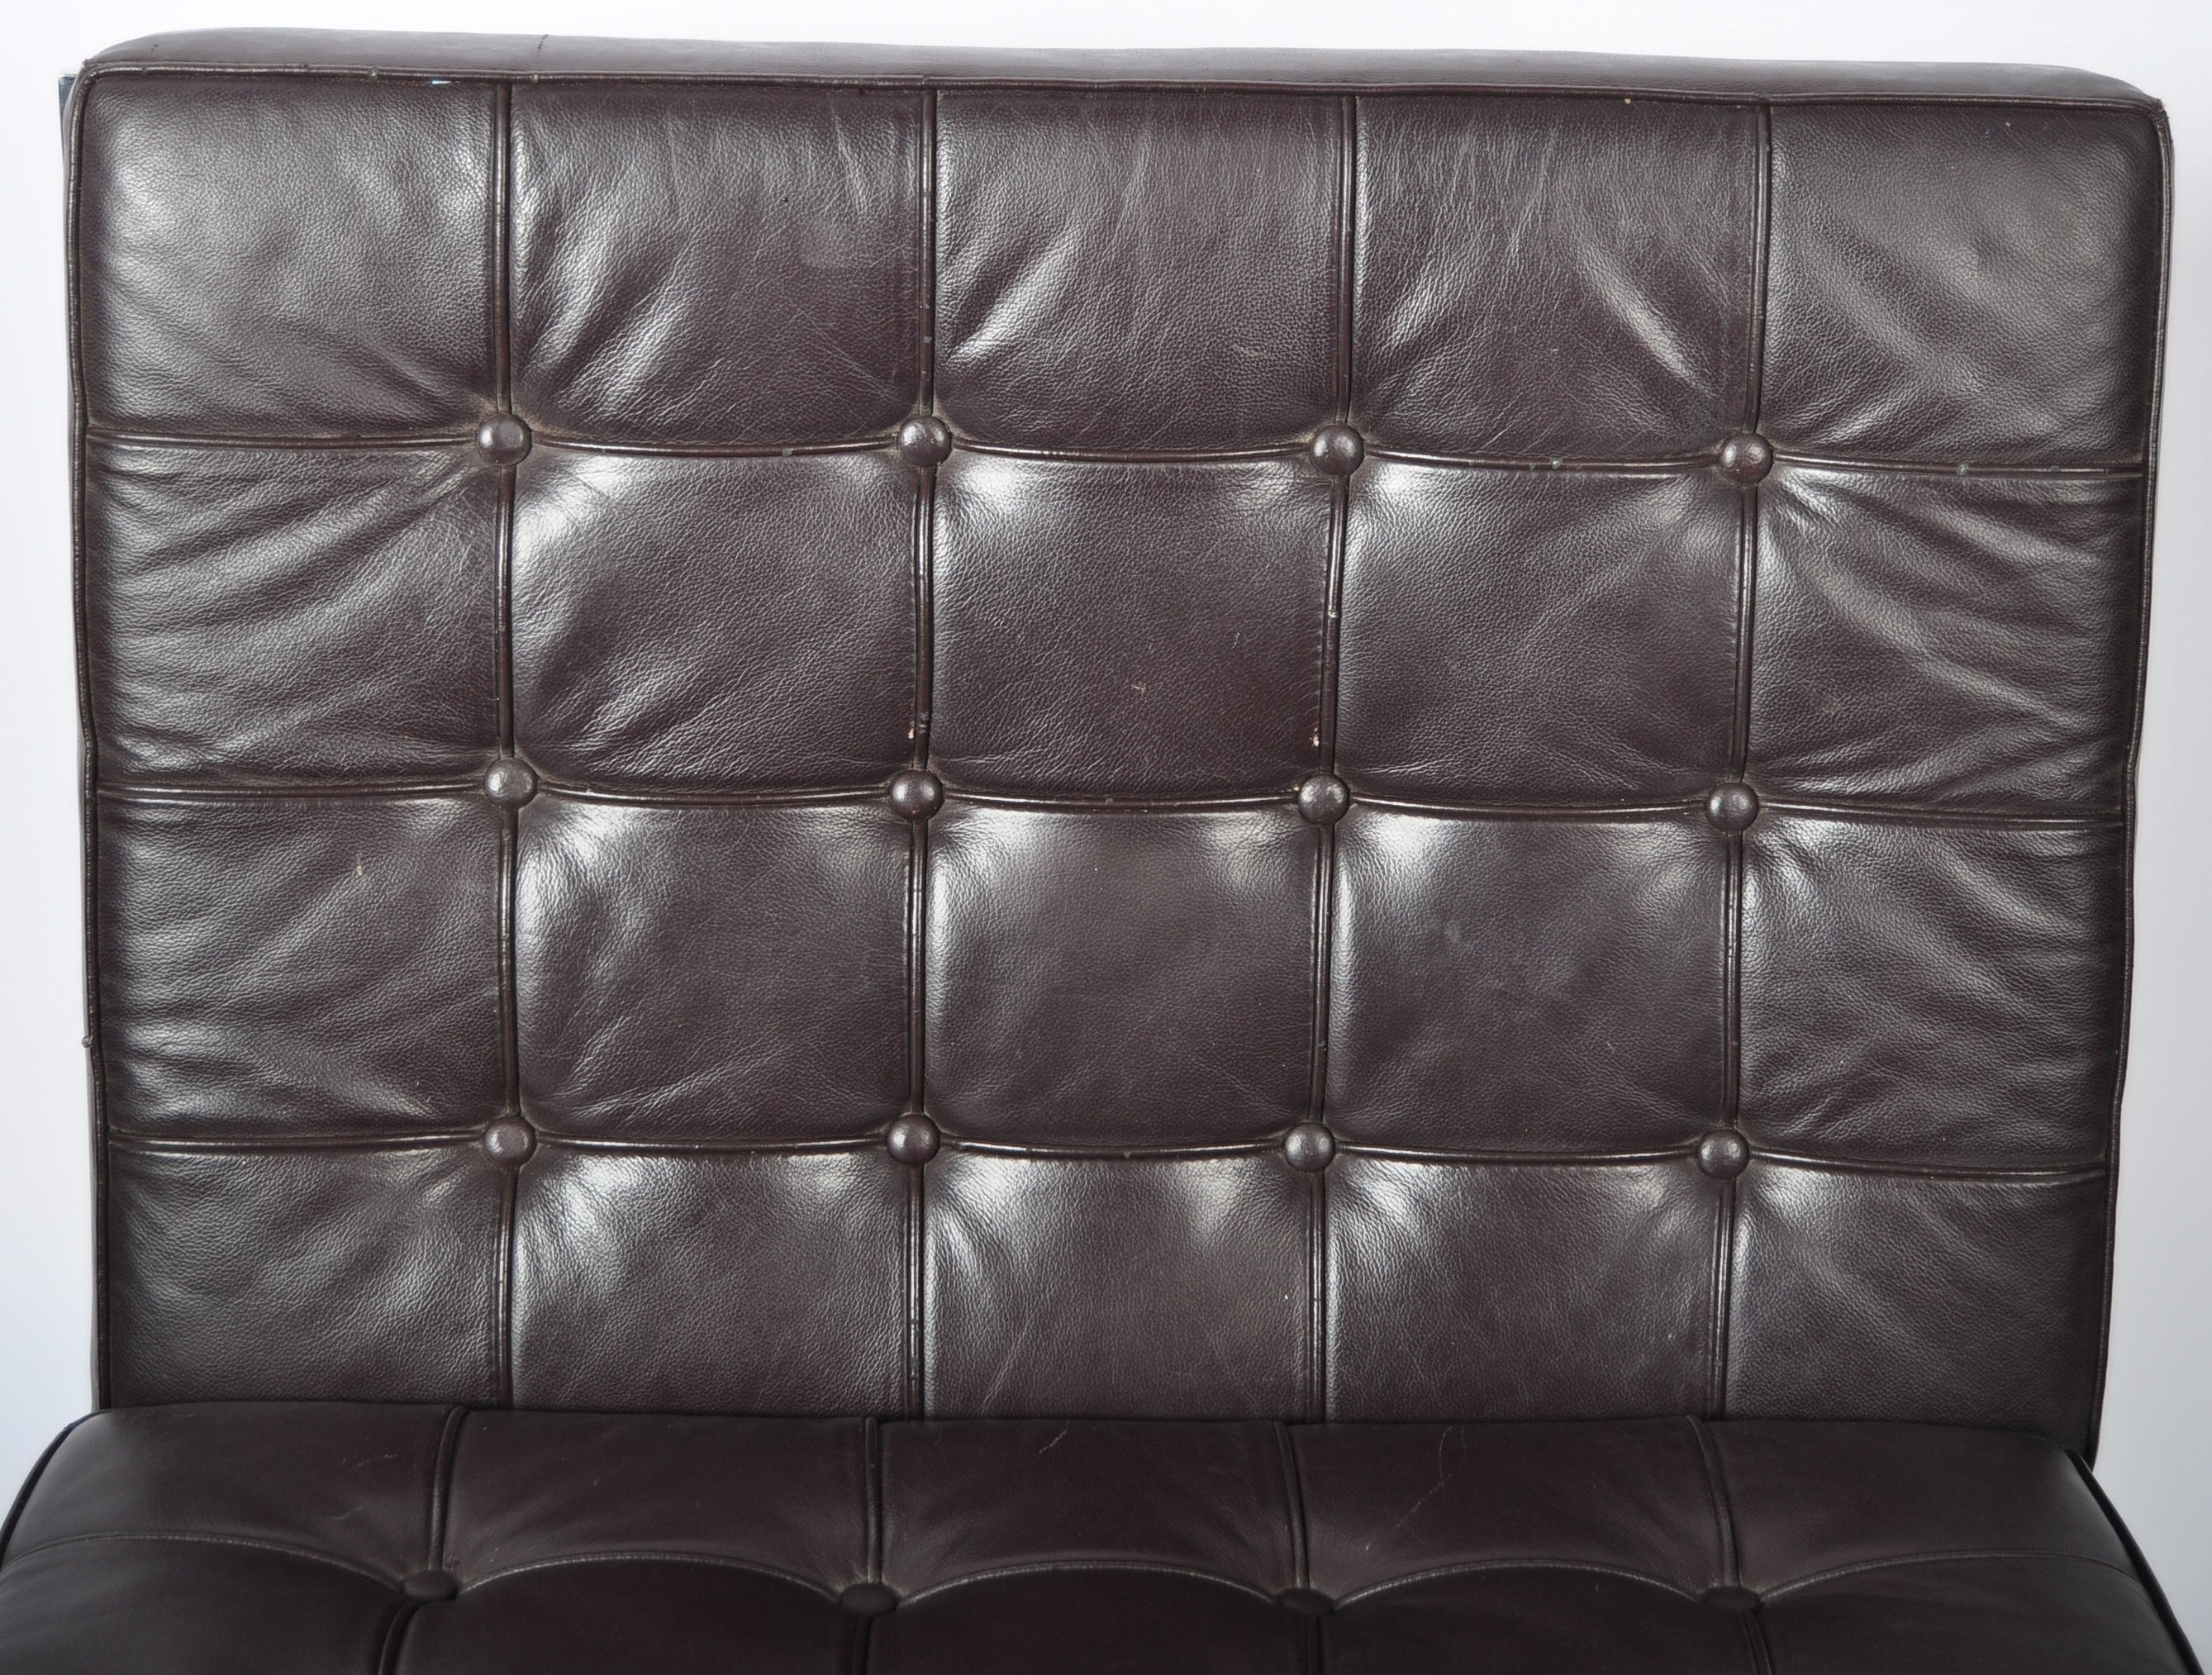 CHROME X-FRAME BARCELONA CHAIR IN BROWN LEATHER - Image 3 of 6